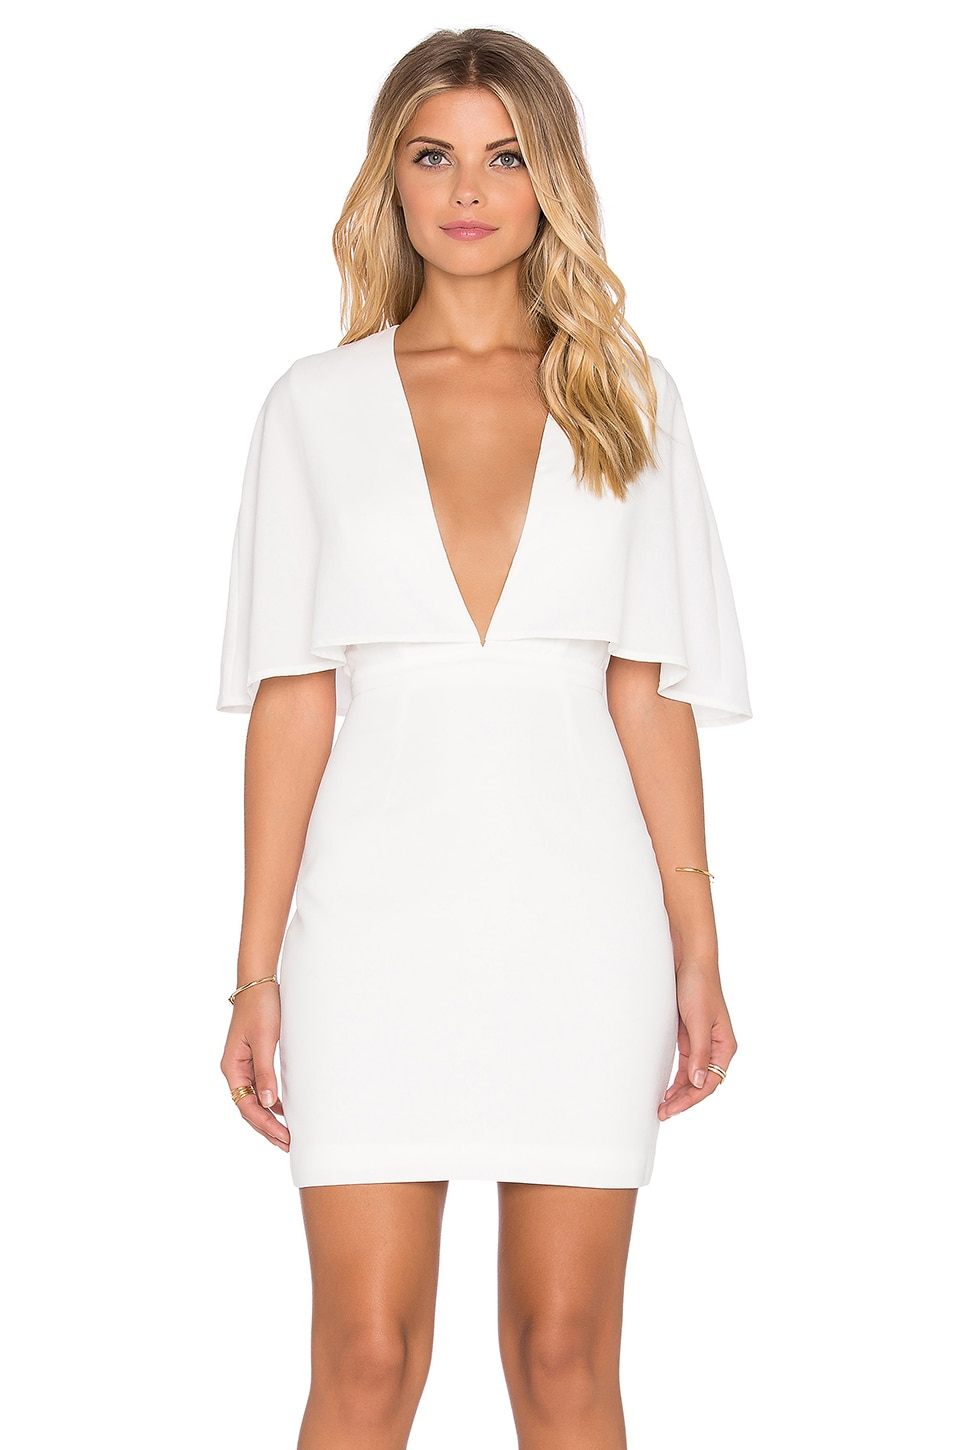 Finders Keepers Natural History Dress in White